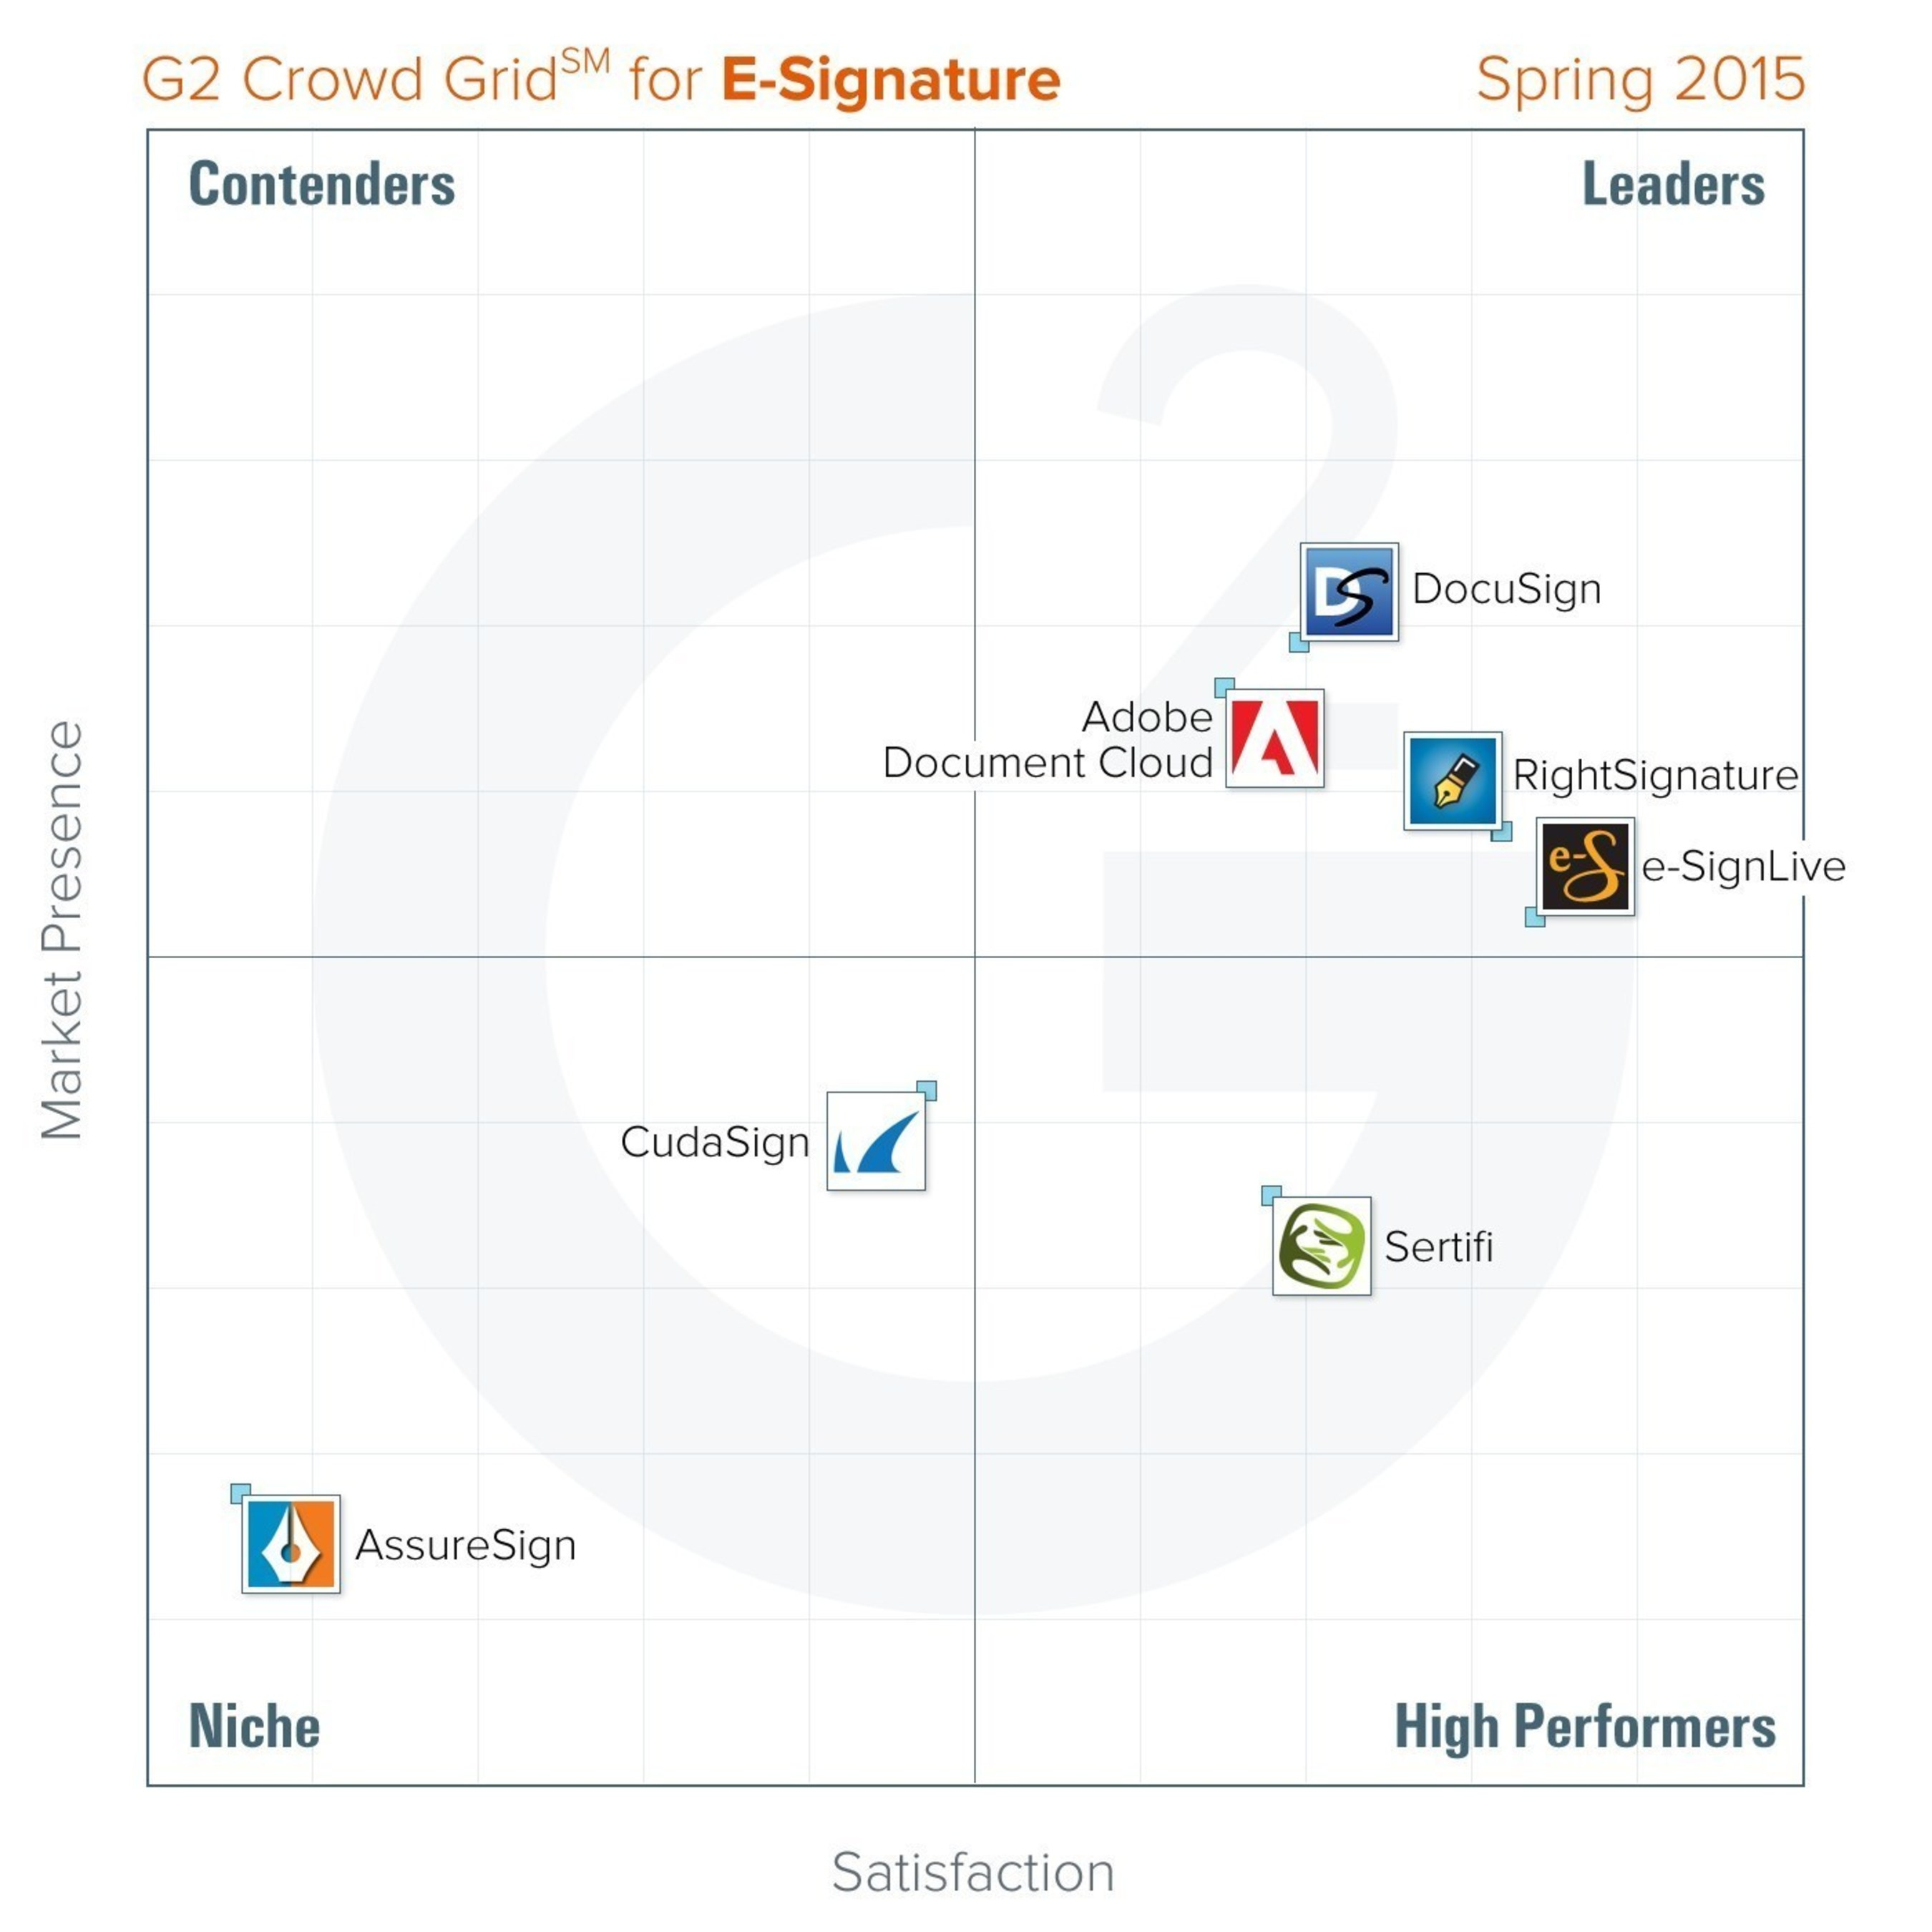 G2 Crowd publishes Spring 2015 rankings of the best e